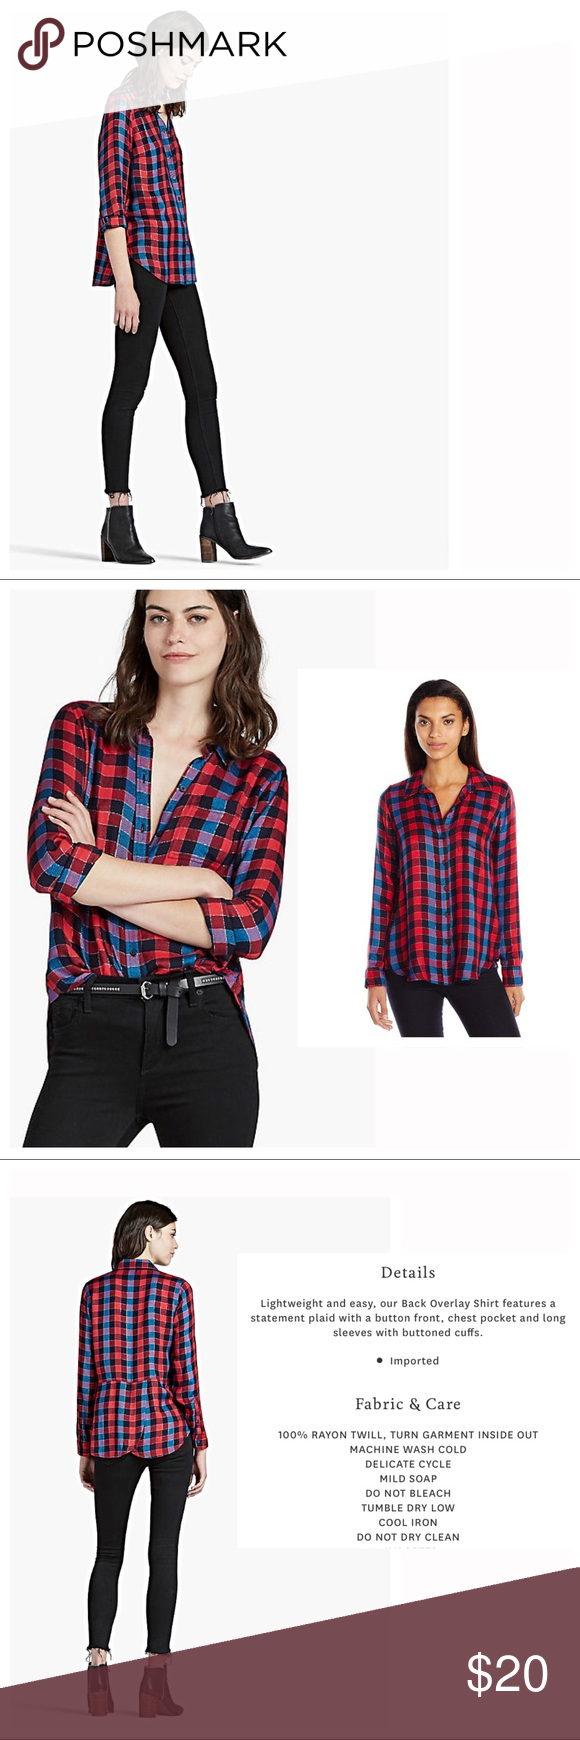 Lucky Brand Red Back Overlay Shirt A fun twist on an old classic! Love the subtle sparkle and the lightweight feel of this shirt. Perfect layering piece. Easily transitions from summer to fall. Worn once tied at waist. Perfect condition, no defects. Offers welcome. Bundle & save✨ Lucky Brand Tops Button Down Shirts